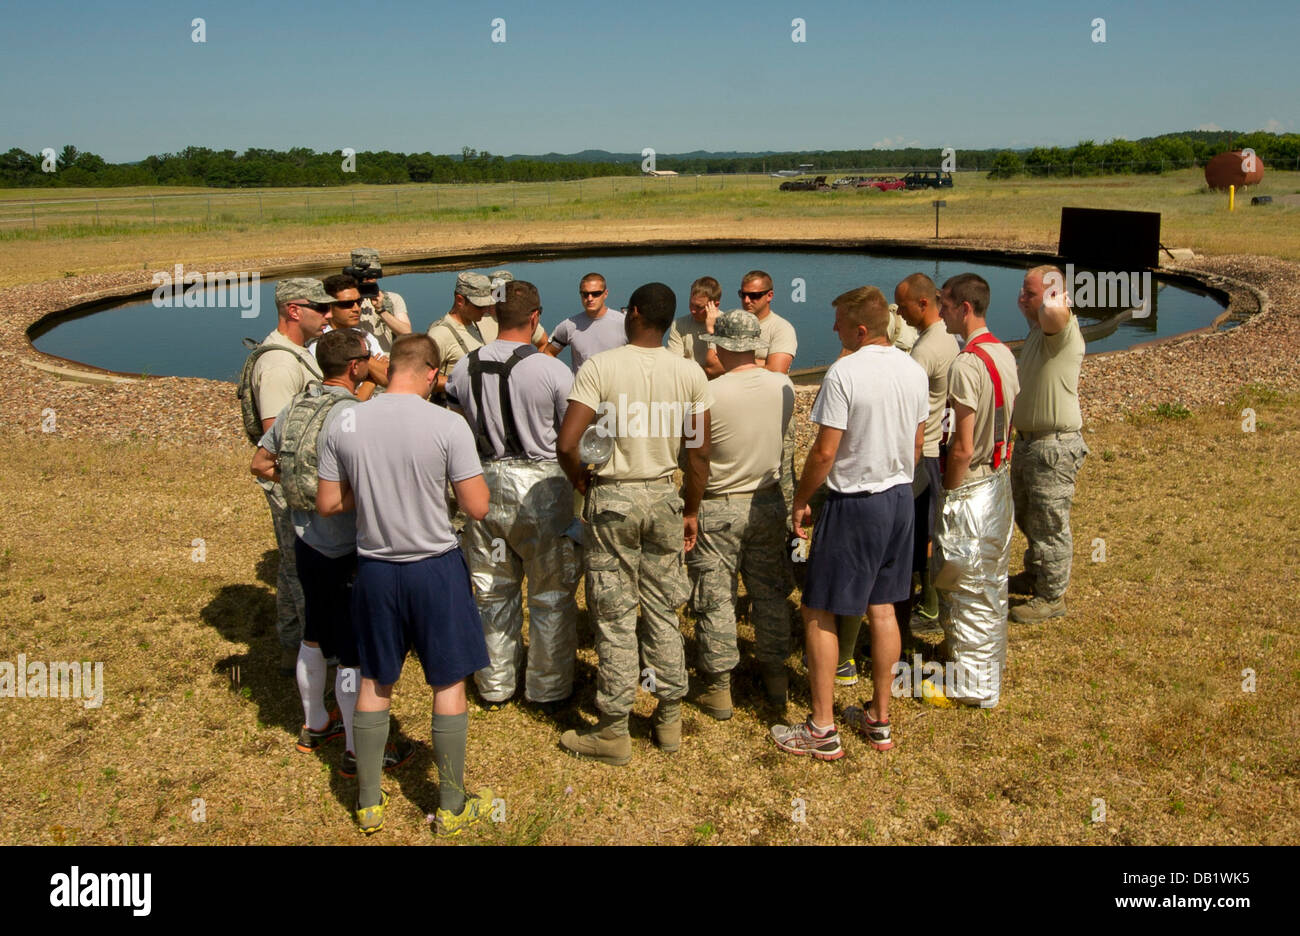 U.S. Air Force firefighters from various bases, are briefed before live-fire training during Exercise Global Medic, - Stock Image